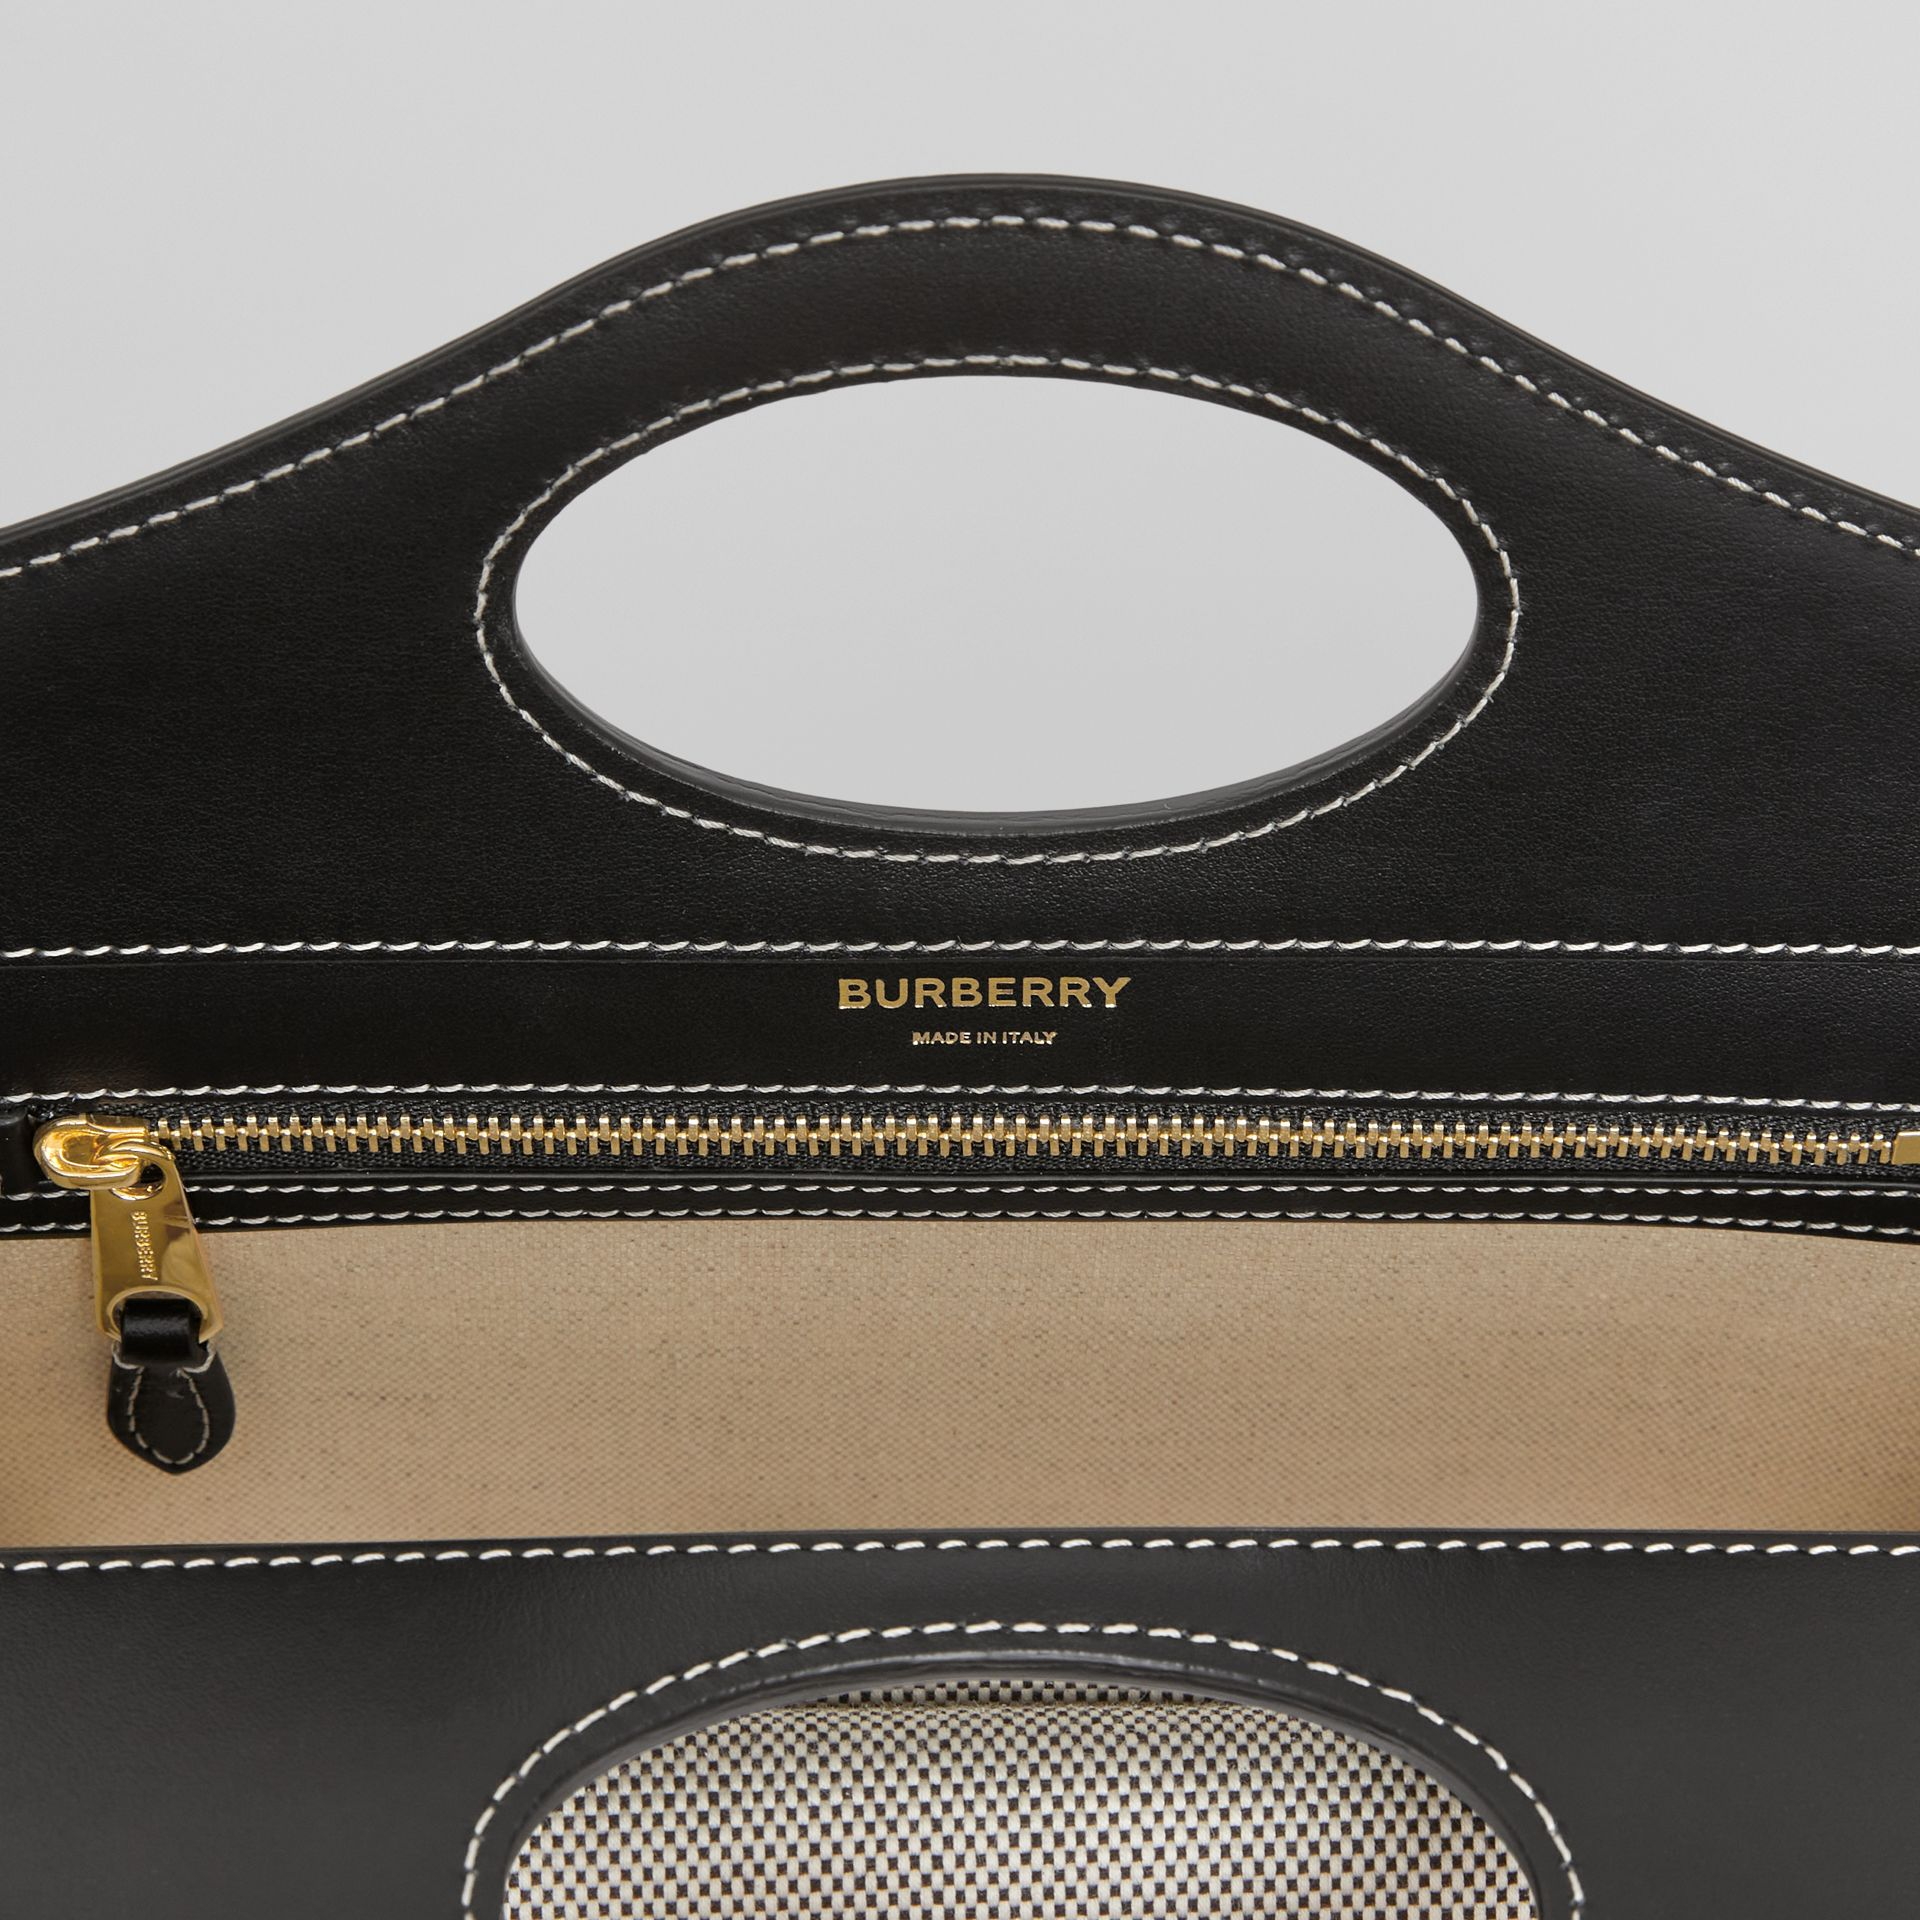 Mini Two-tone Canvas and Leather Pocket Bag in Black/fiery Red - Women | Burberry - gallery image 6